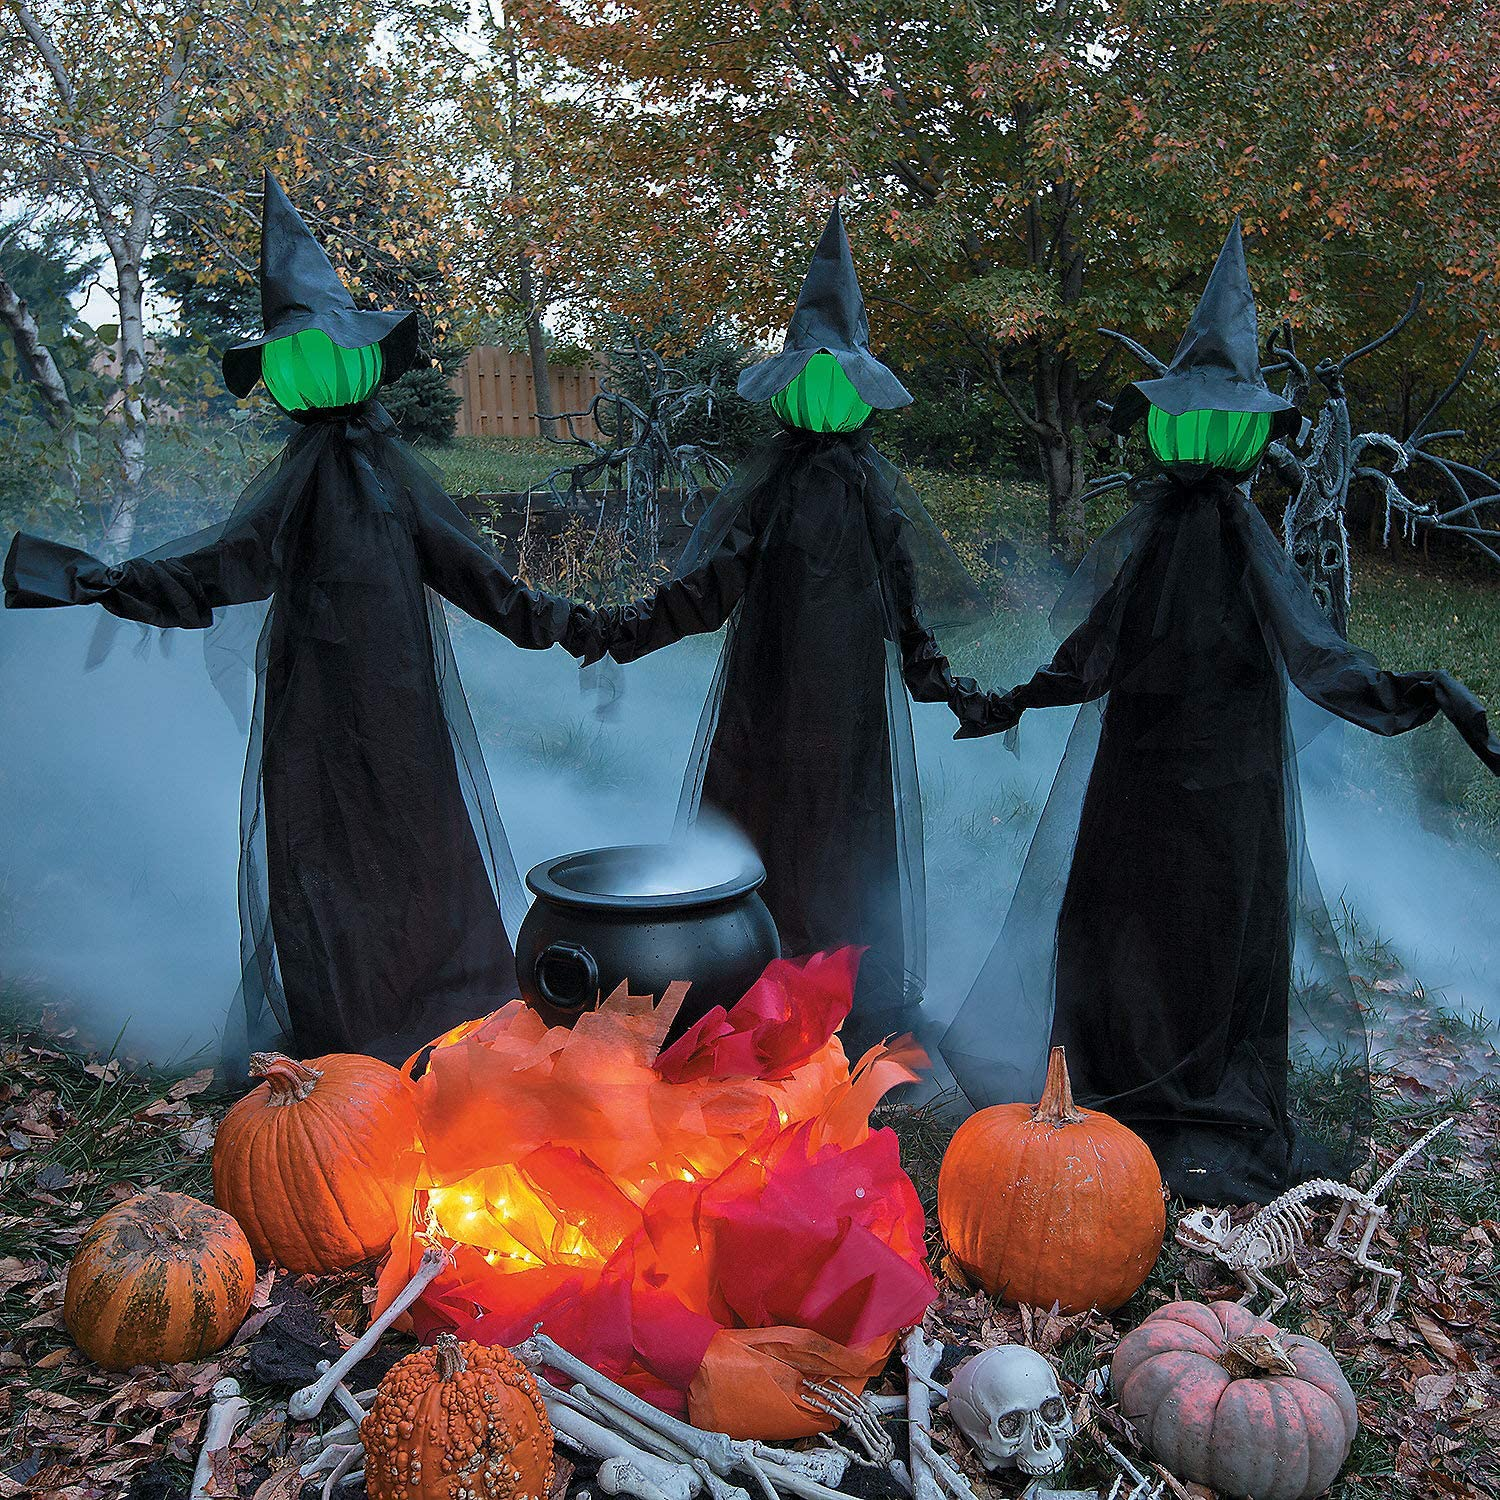 Witches Holding Hands and Glowing Faces Set of 3 witches 6 feet tall Outdoor Yard Halloween Decoration